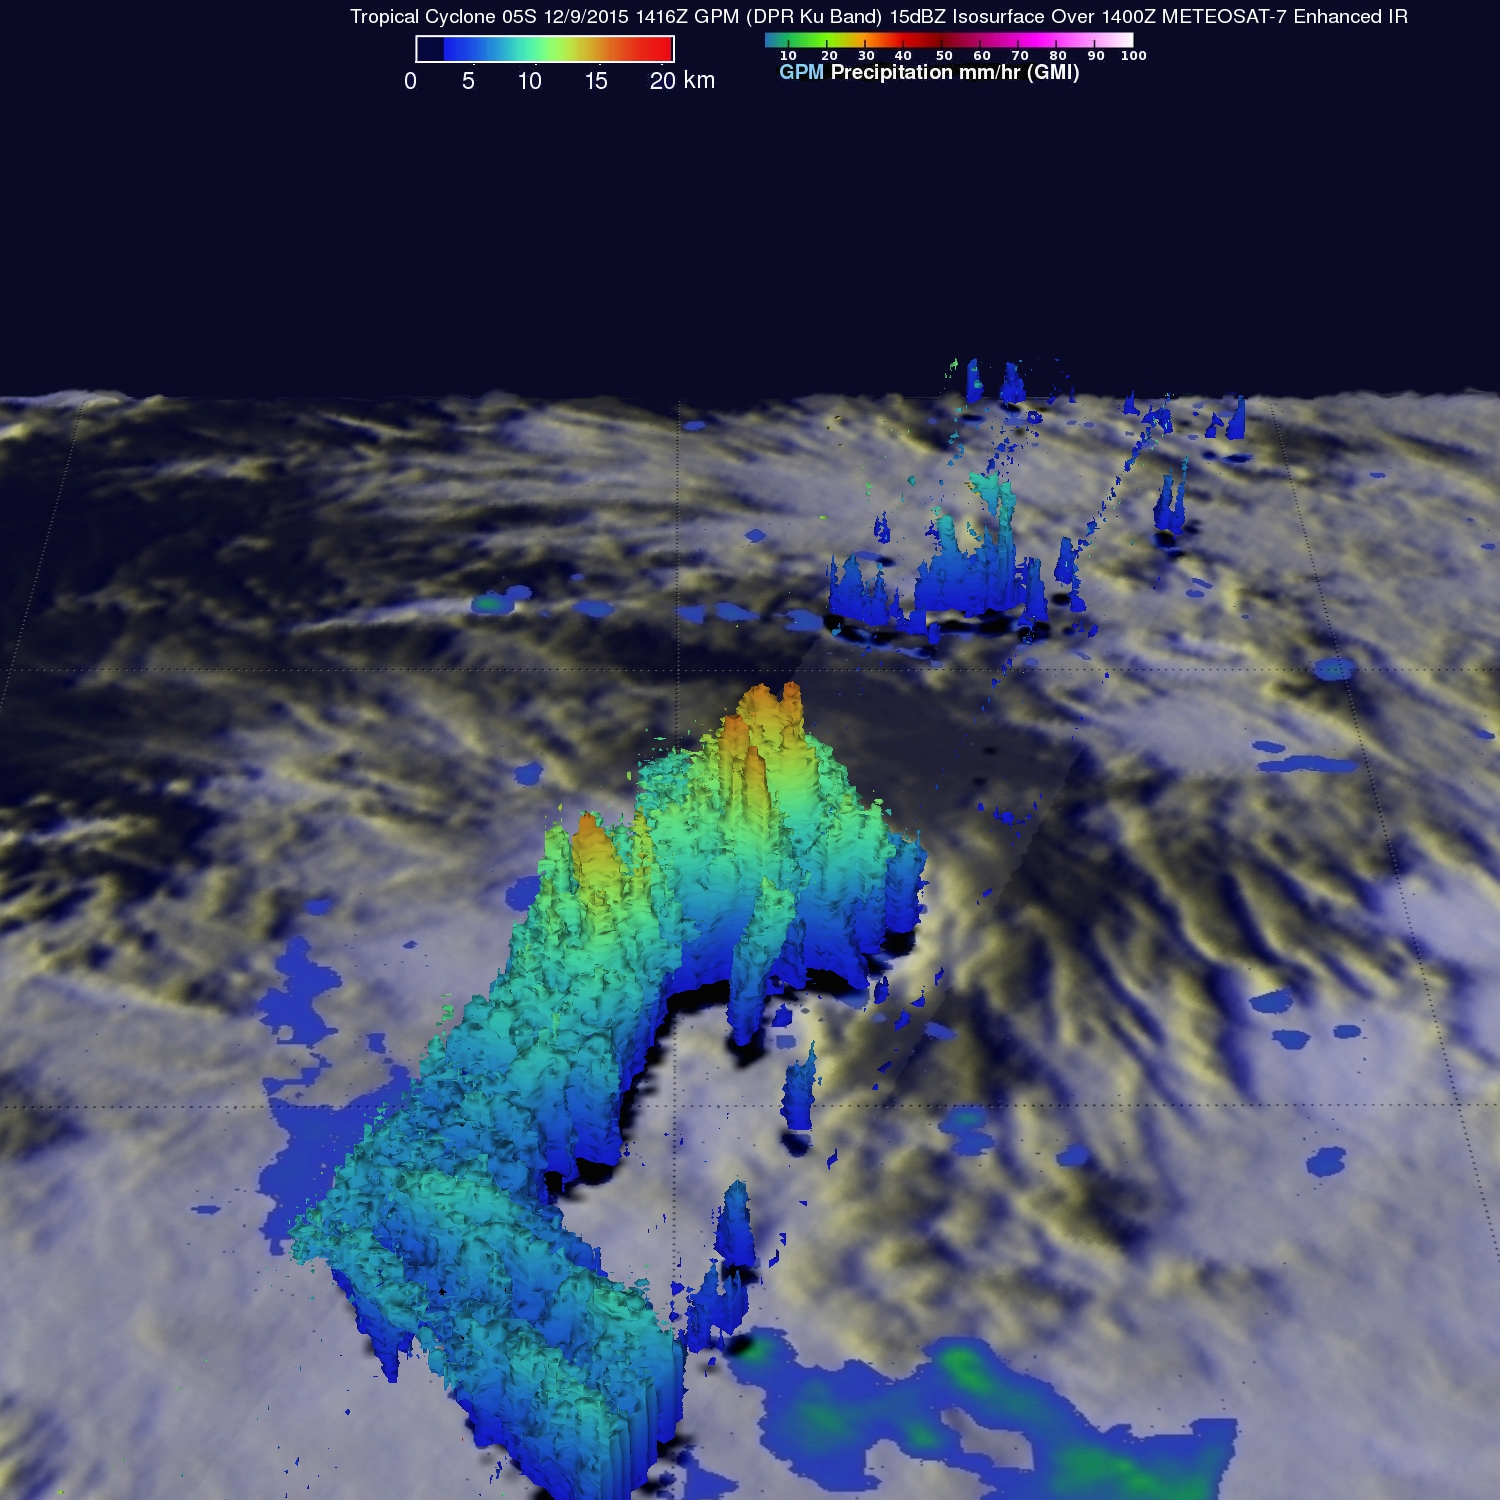 Tropical Cyclone 05S Viewed By GPM